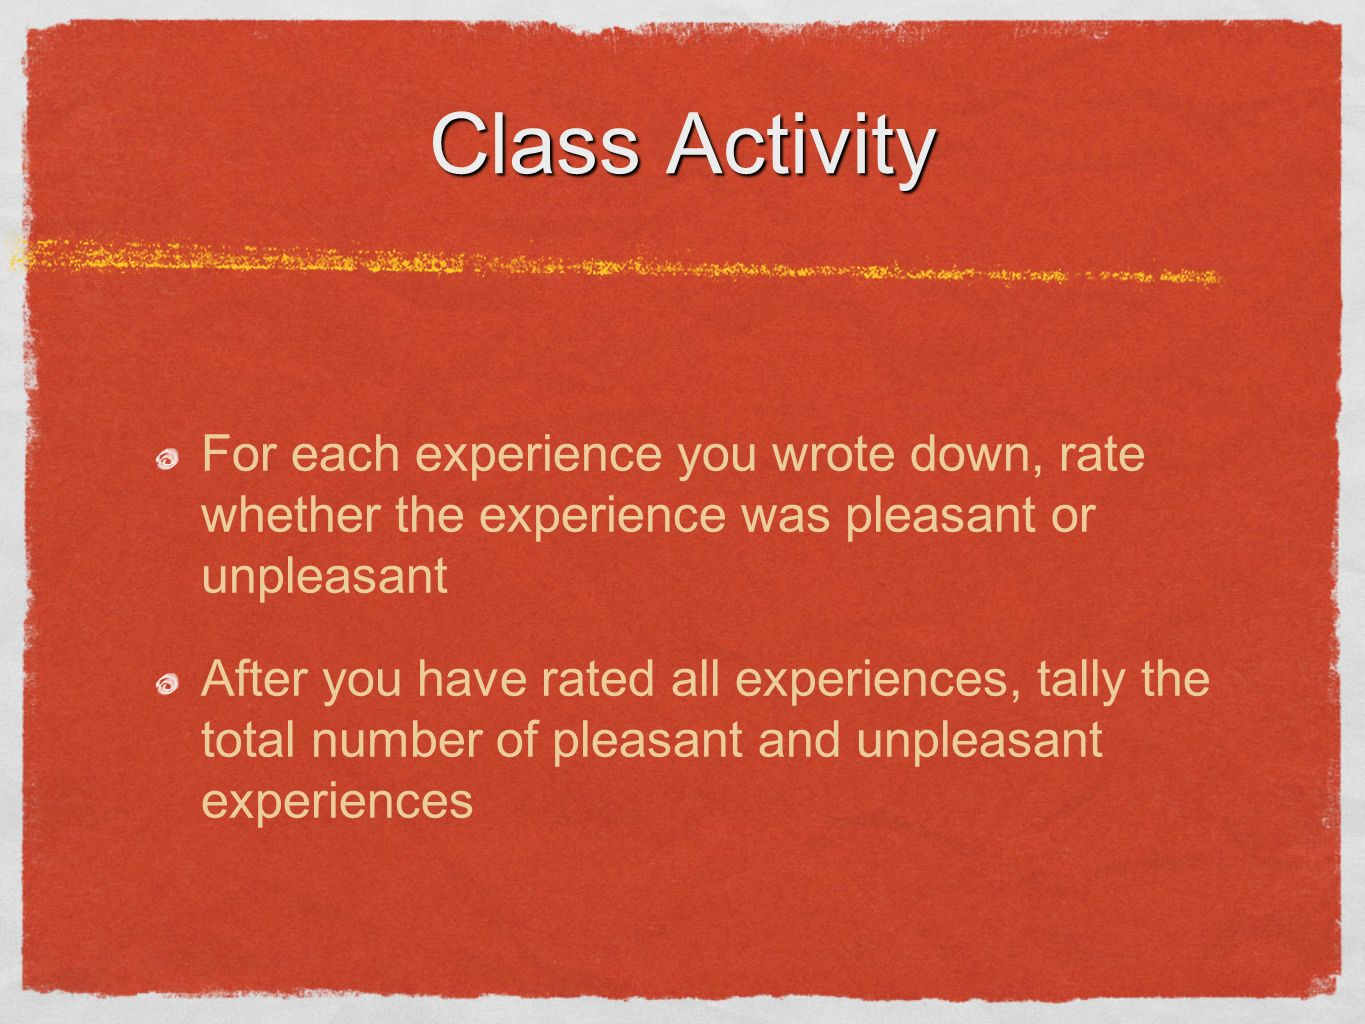 Class Activity For each experience you wrote down, rate whether the experience was pleasant or unpleasant.